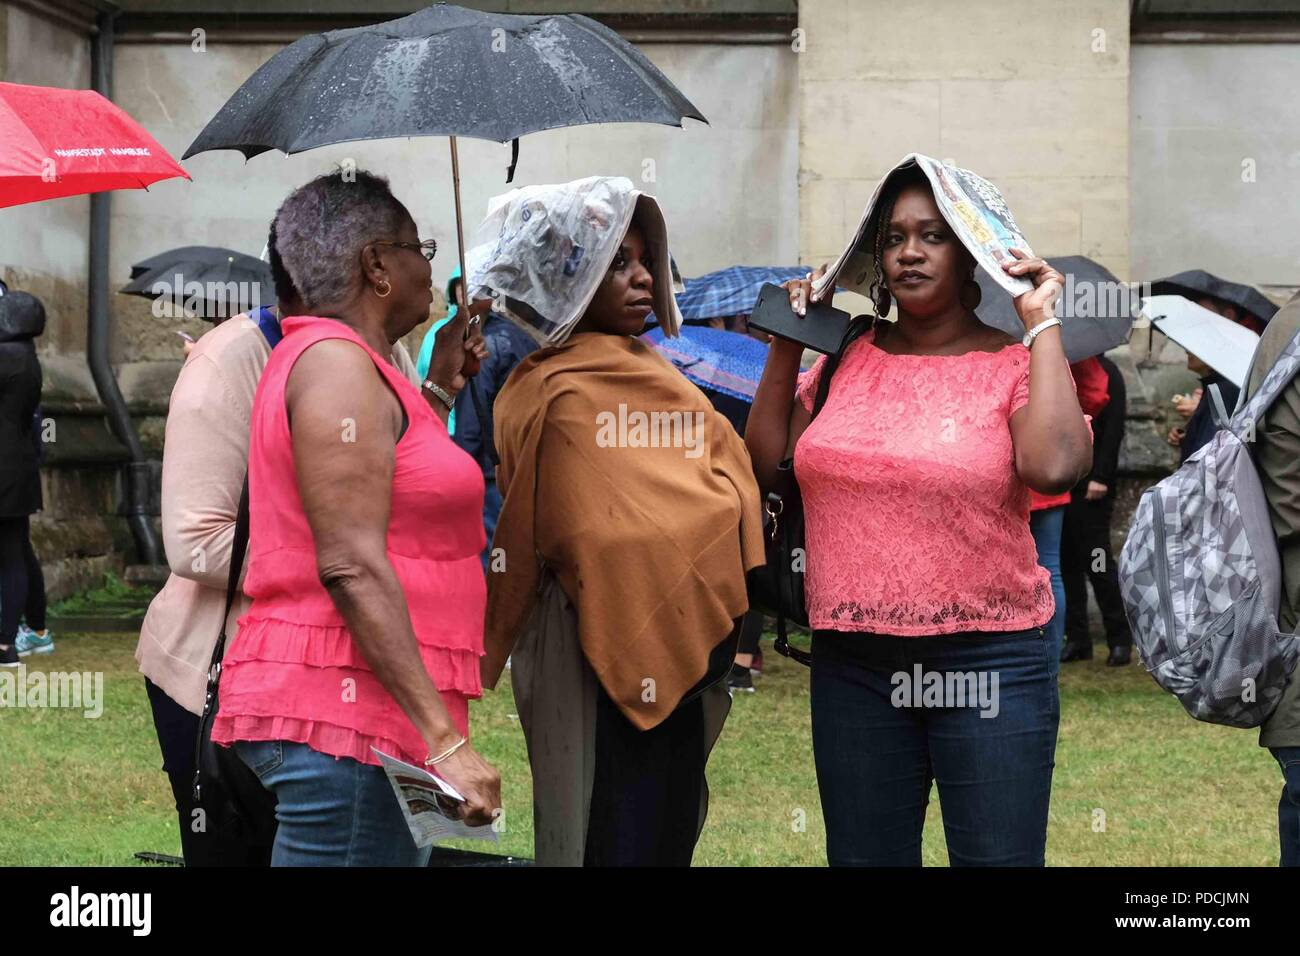 London 9th August 2018:  Two women shelter from the rain with newspapers covering their heads at Westminster Abbey. Credit: Claire Doherty/Alamy Live News - Stock Image